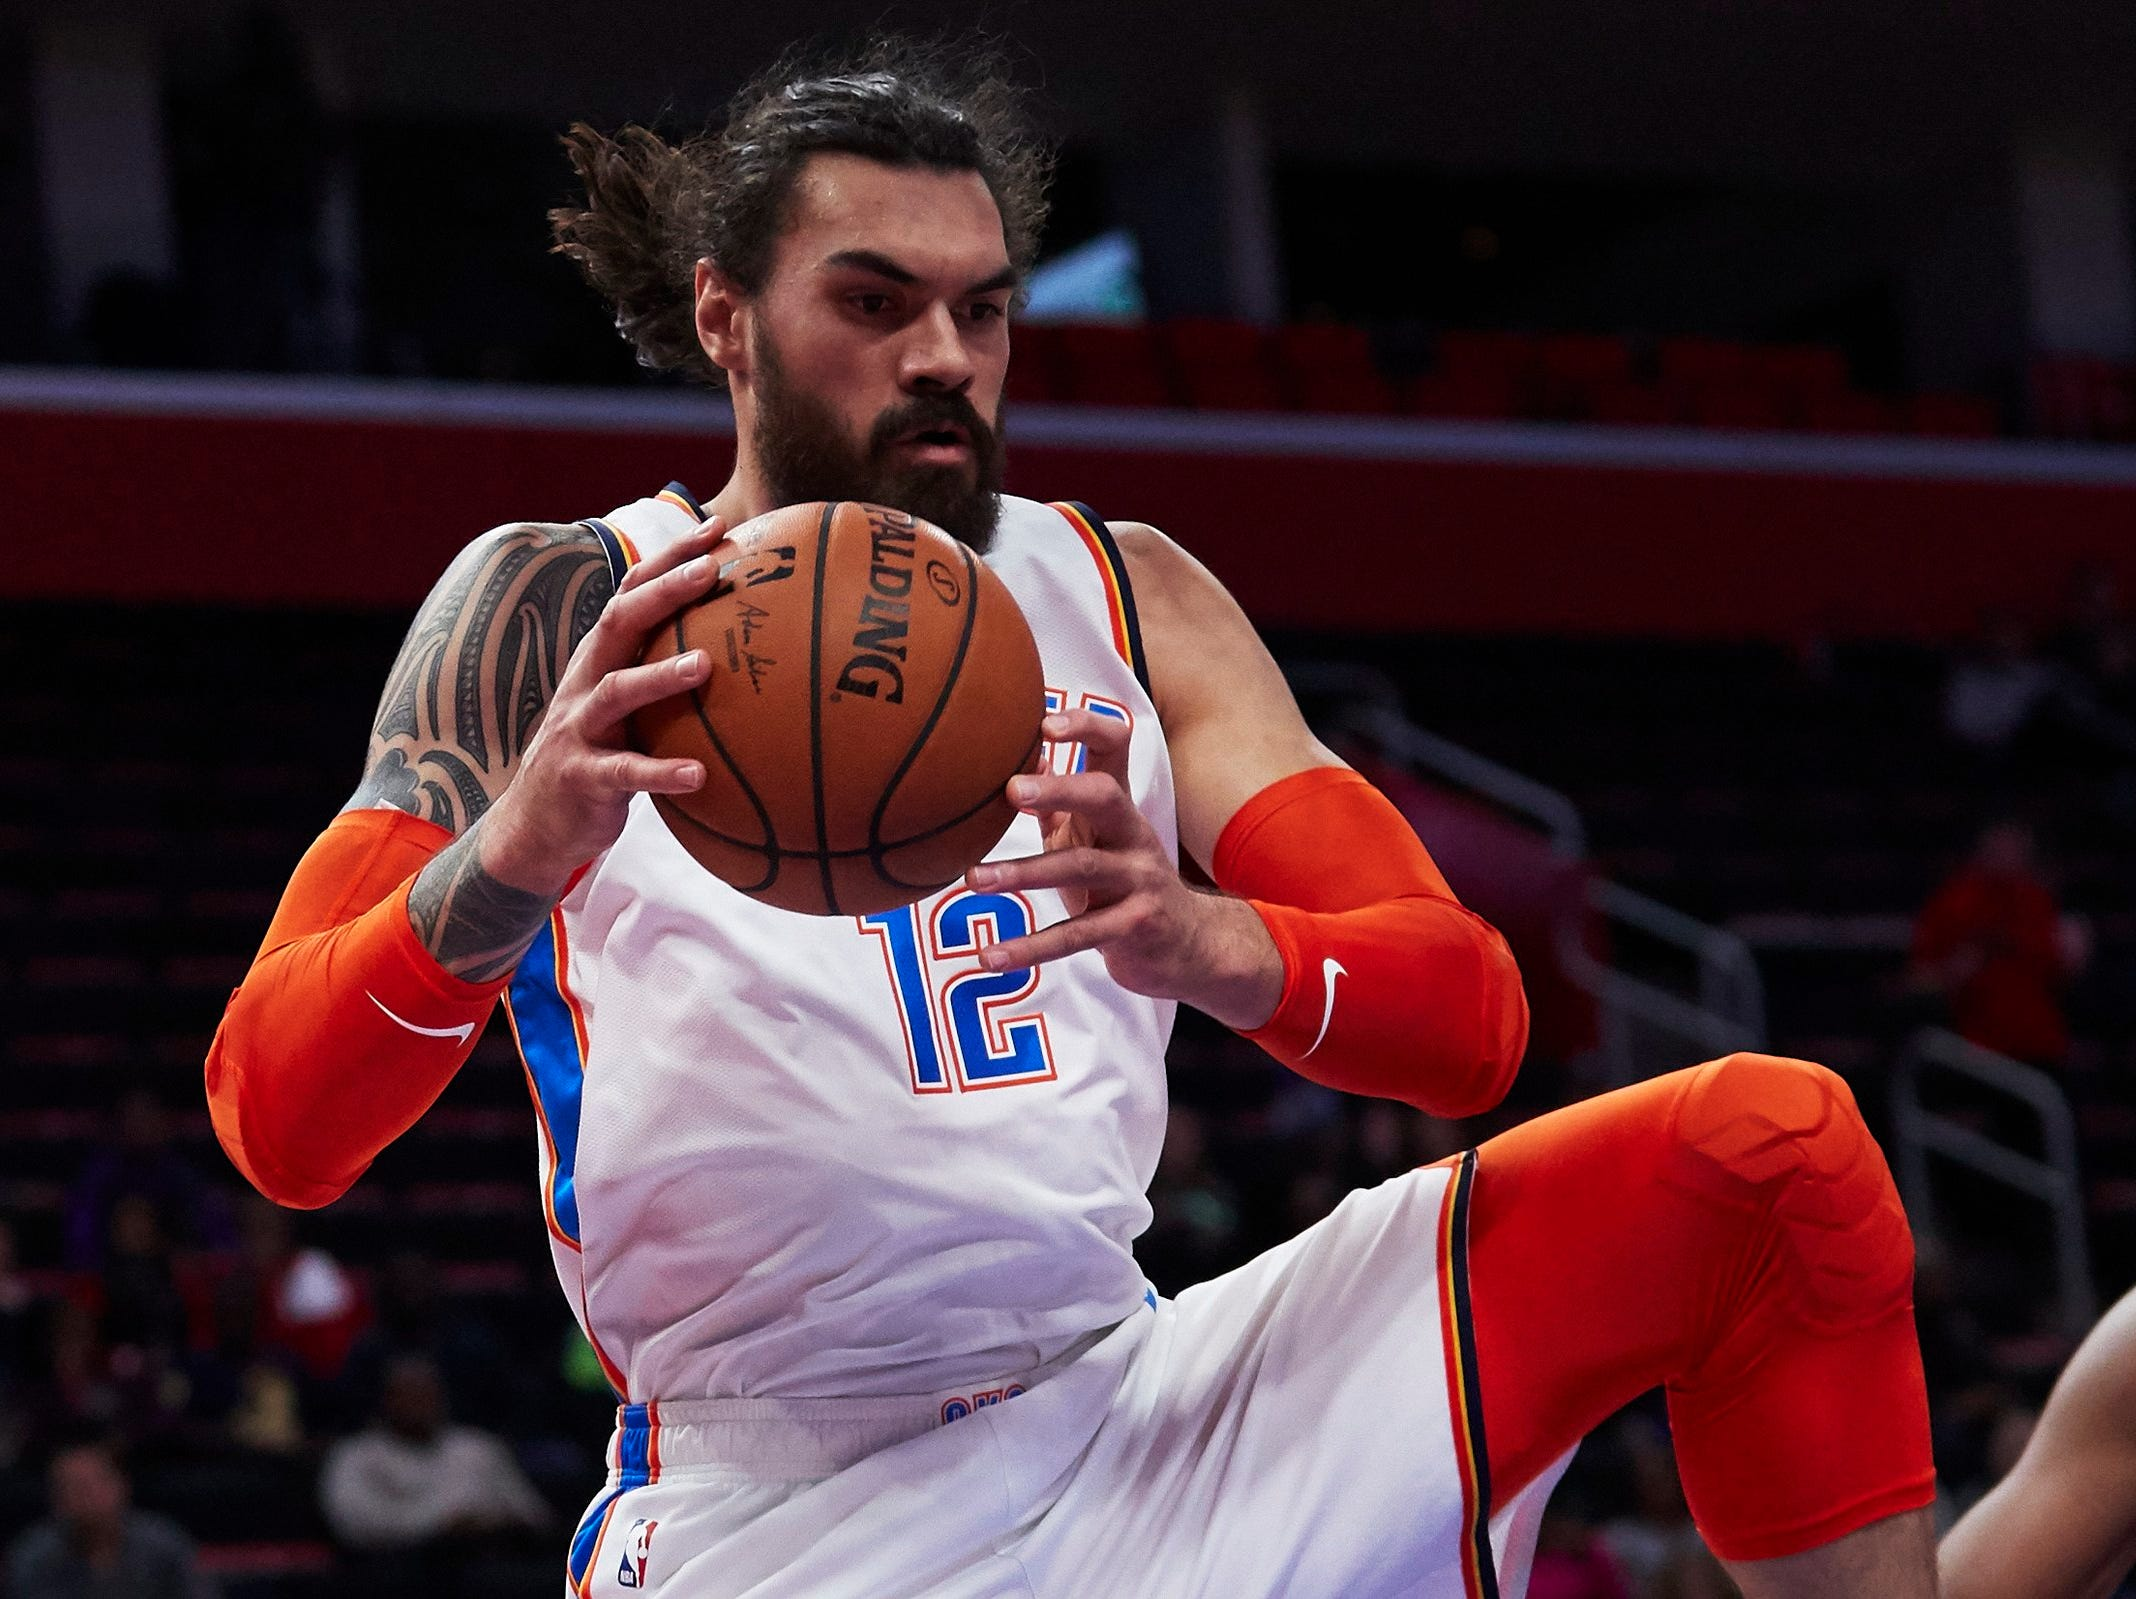 Oklahoma City Thunder center Steven Adams (12) grabs the rebound in the first half against the Detroit Pistons at Little Caesars Arena.